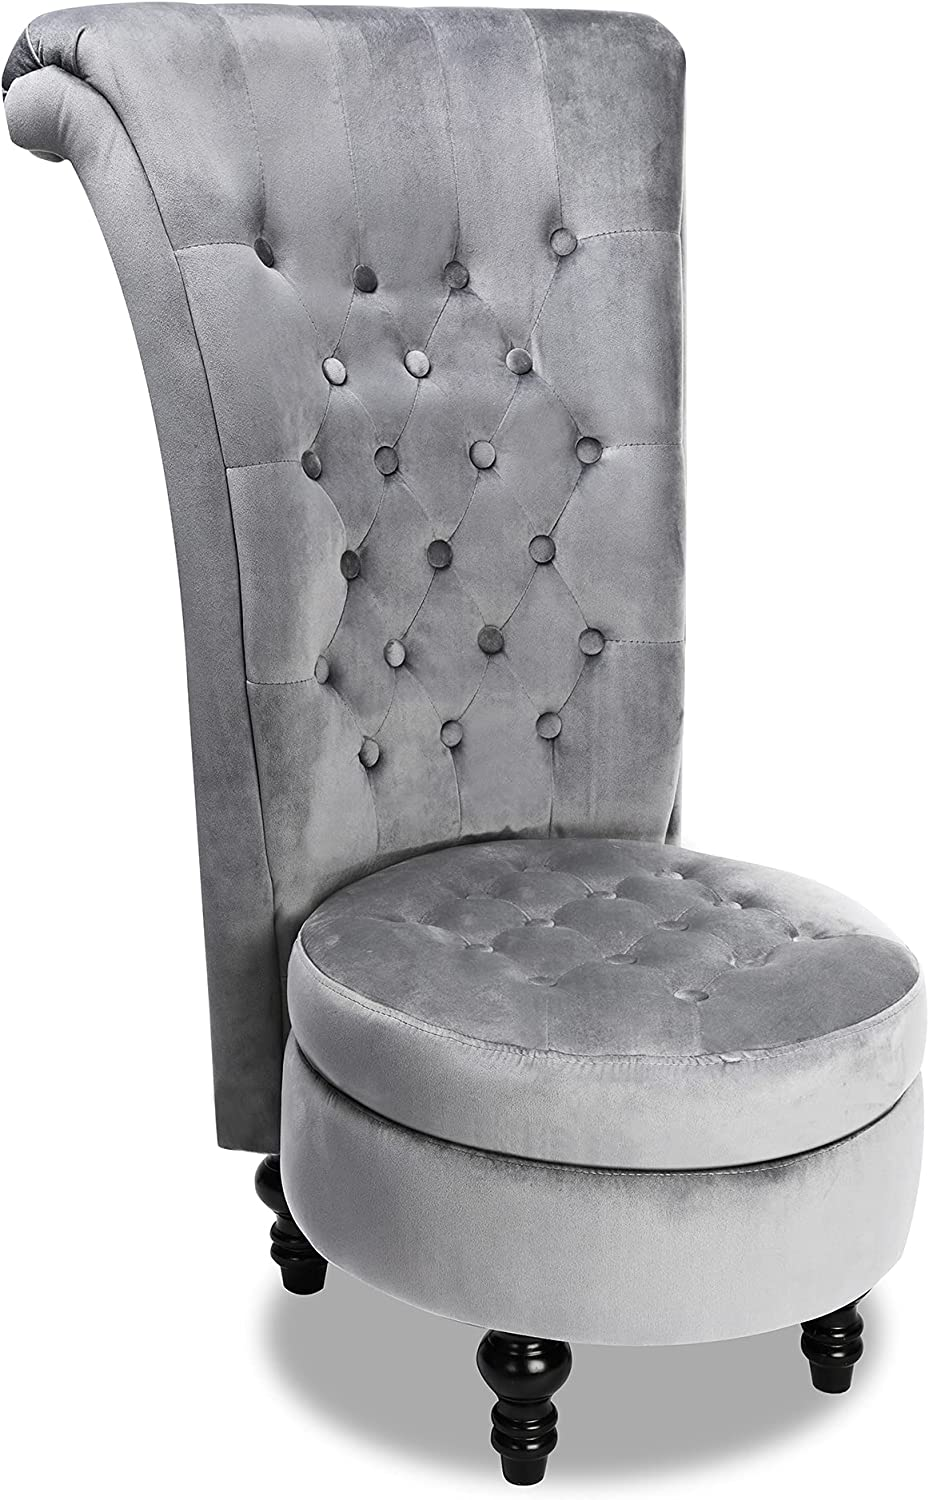 MU Royal Velvet High Back Armless Chair, Retro Elegant Luxury Throne Chair, Upholstered Tufted Accent Seat w/Storage for Dressing Room, Living Room, Bedroom, Grey, 2021 HOT